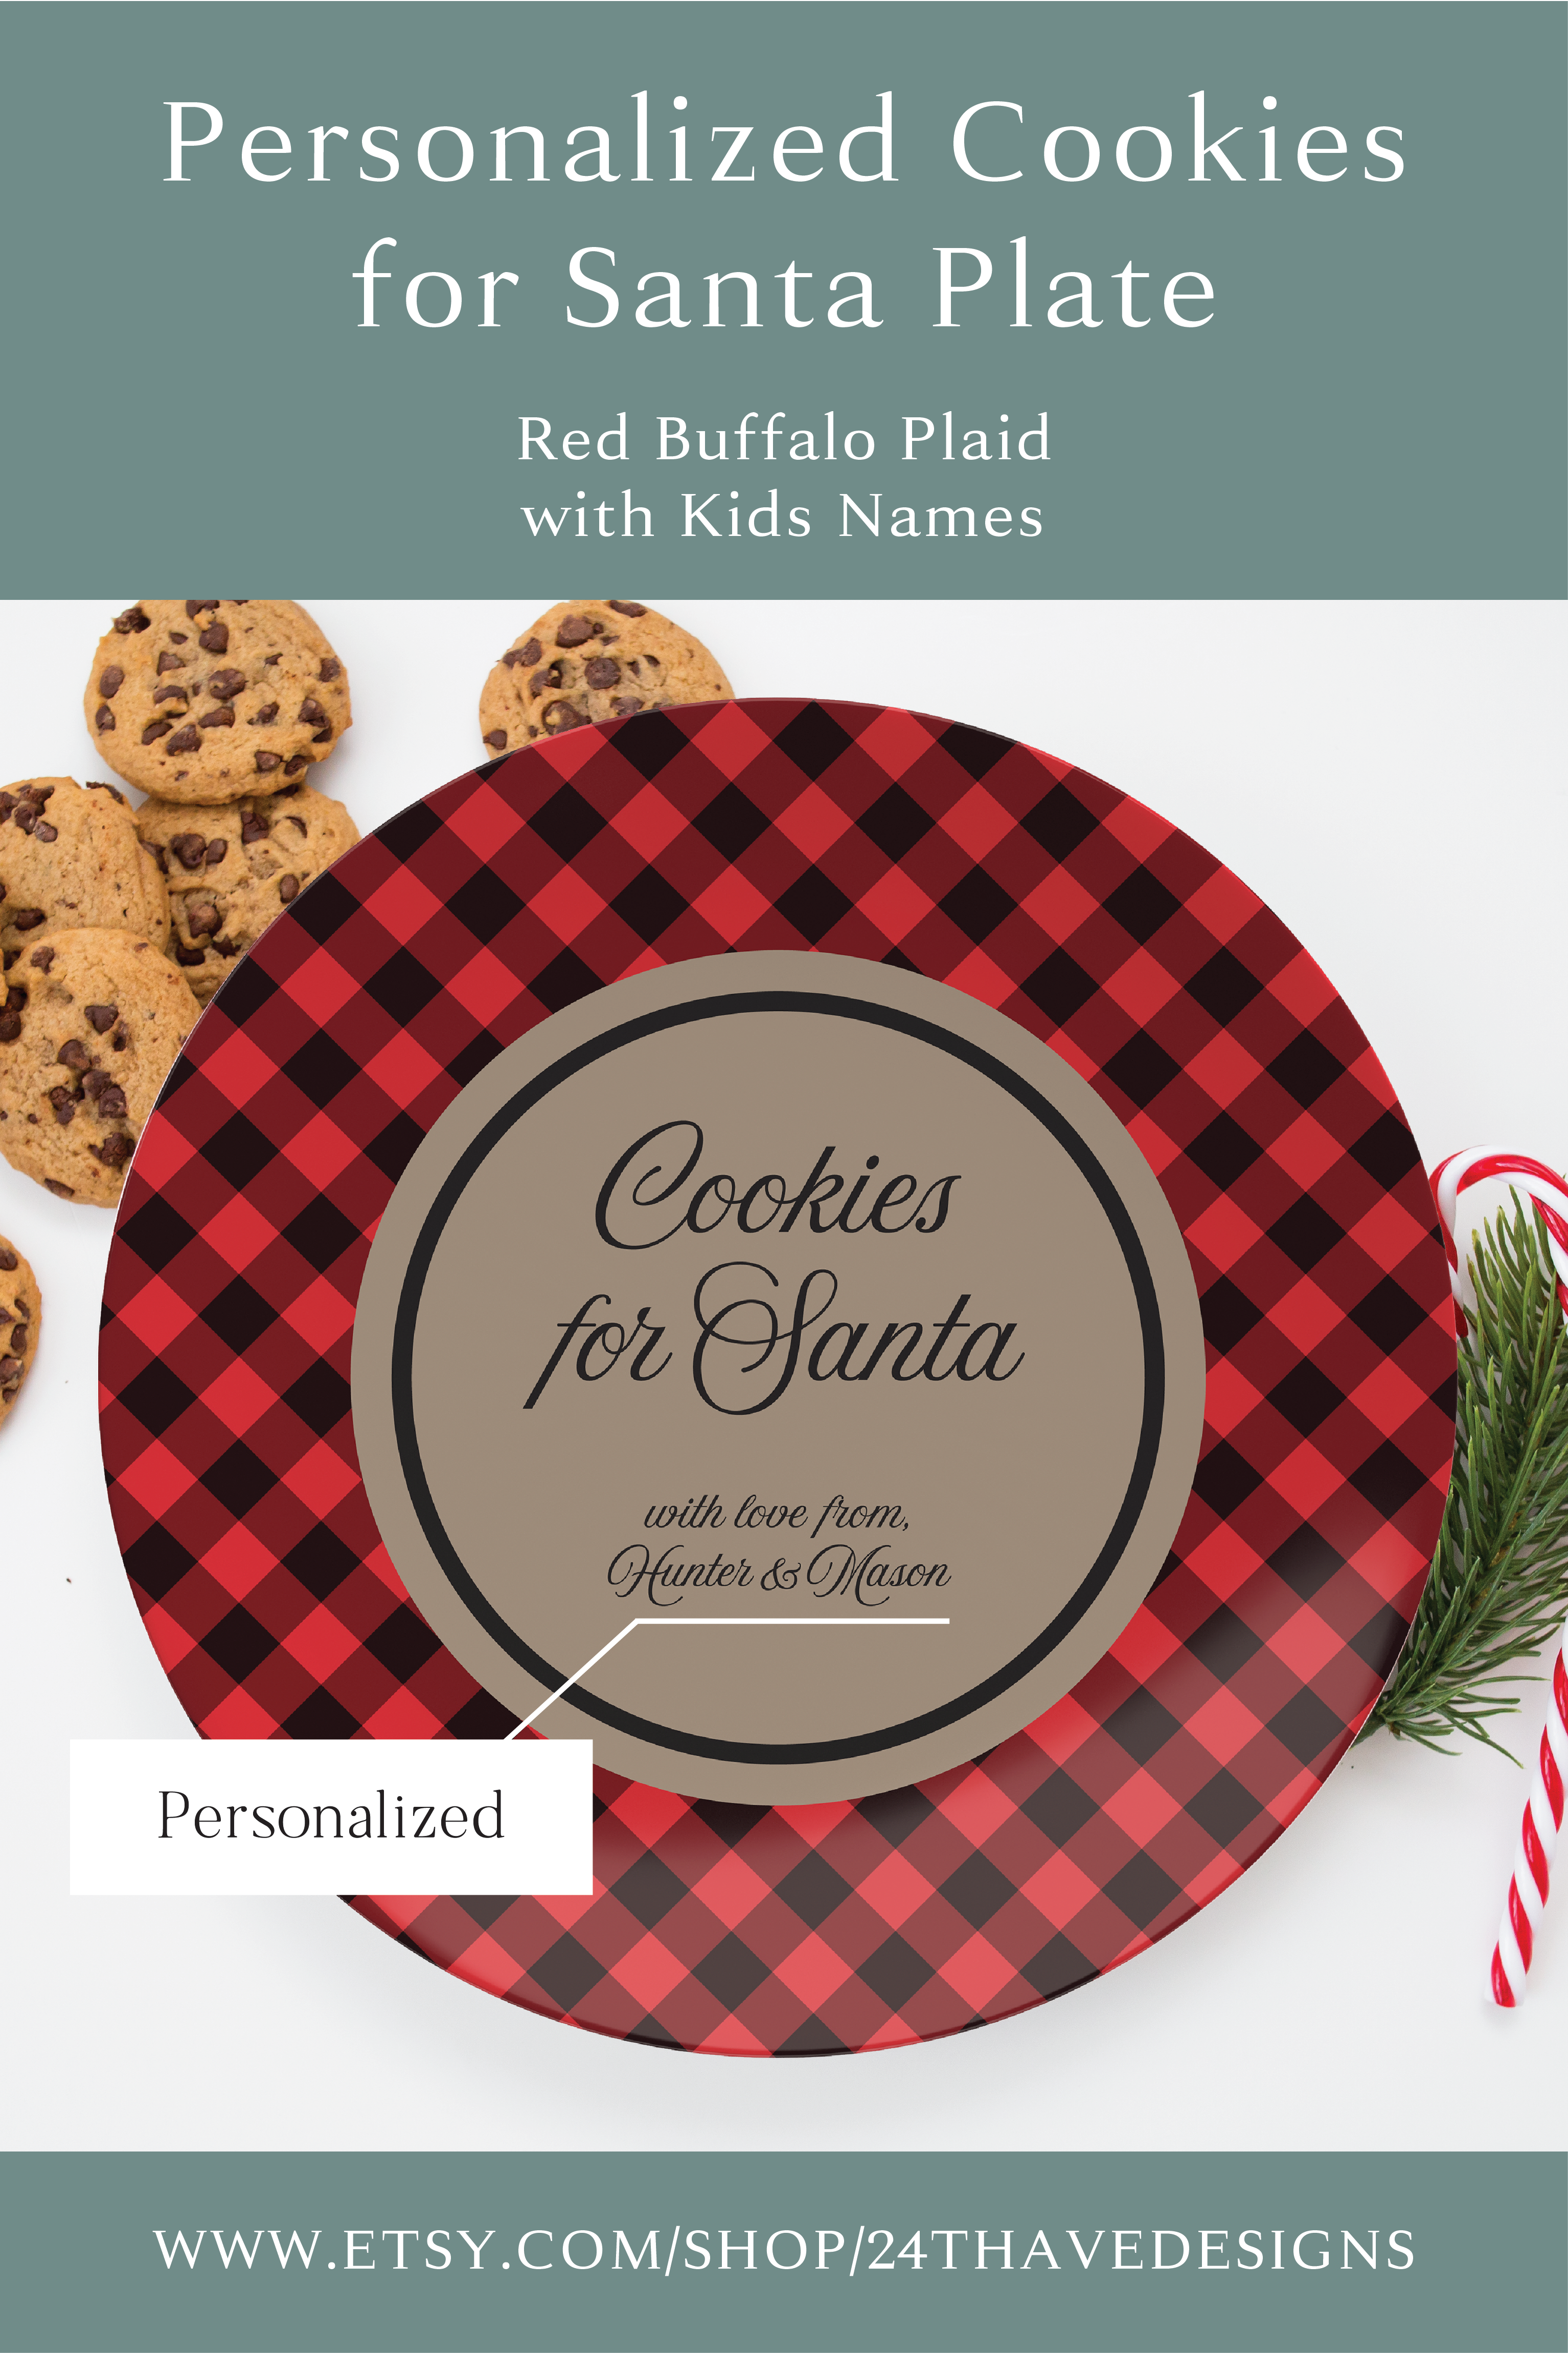 Cookies For Santa Buffalo Plaid Plate - Personalized with Kids Names - Santa cookie plate Start a family tradition every Christmas Eve by placing cookies for Santa on your very own 10